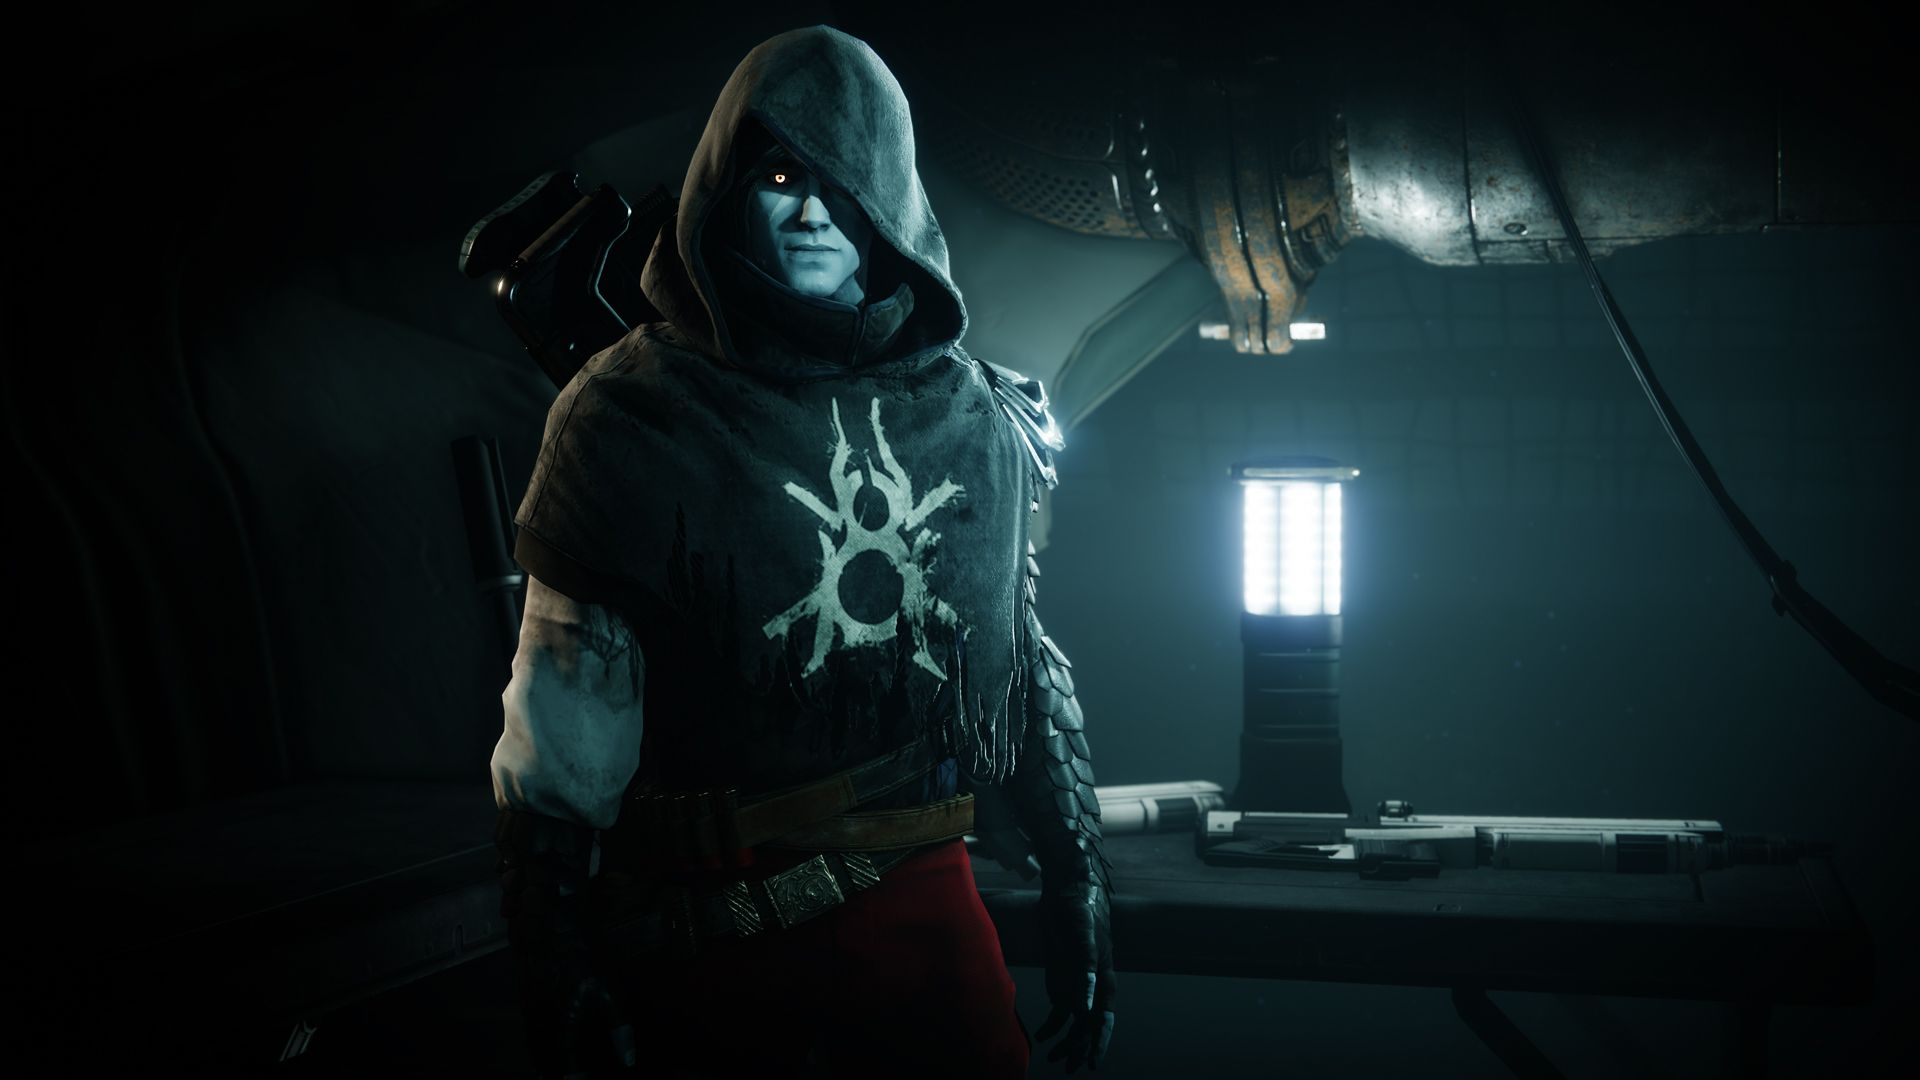 Destiny 2: How to get Hawkmoon with random rolls and the exotic catalyst